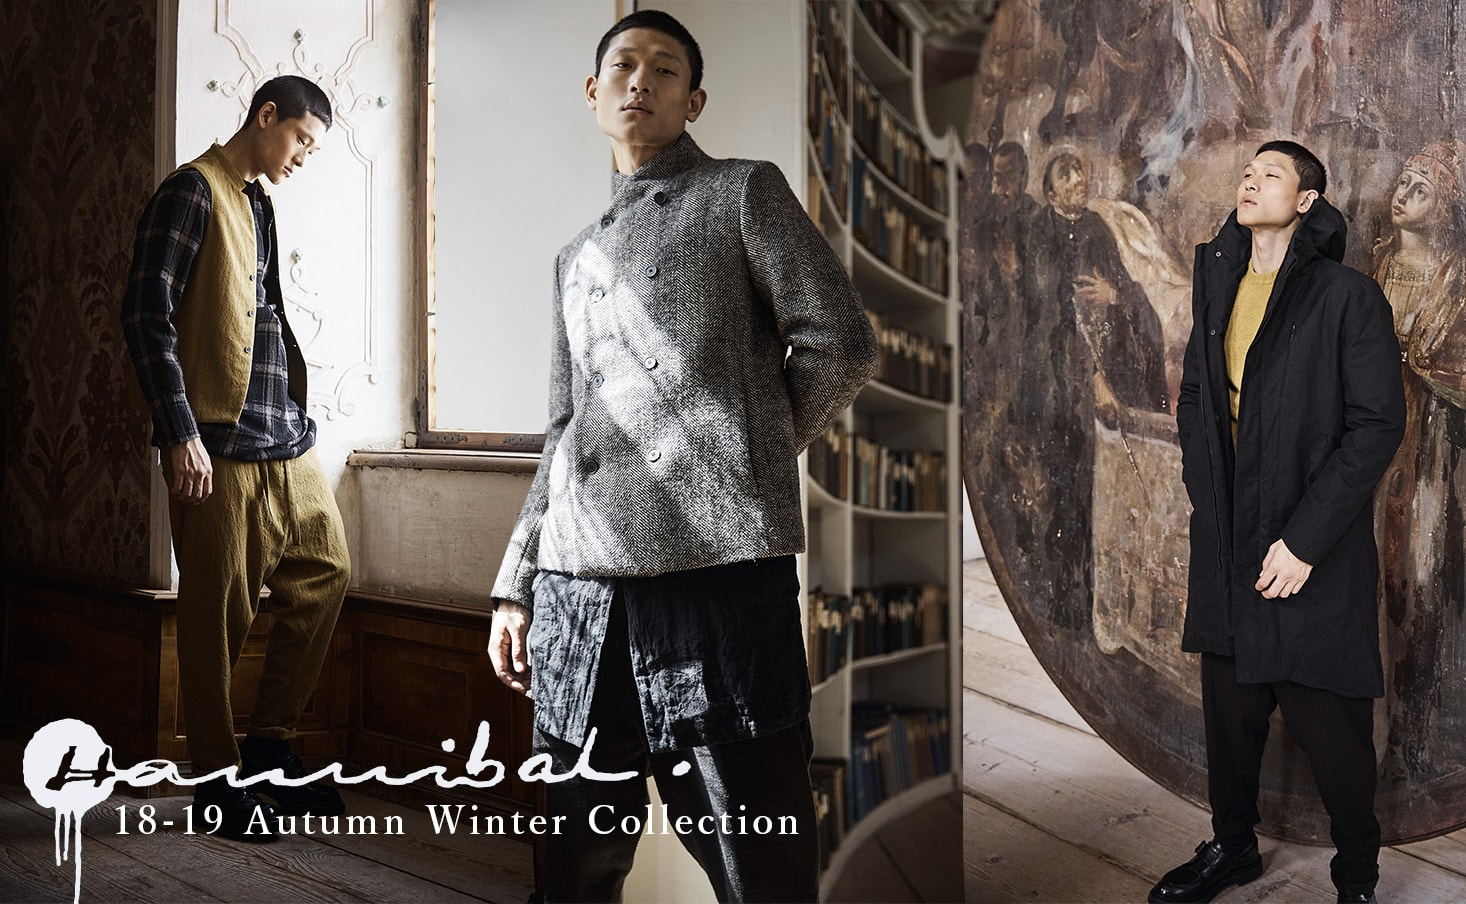 hannibal 18-19AW collection